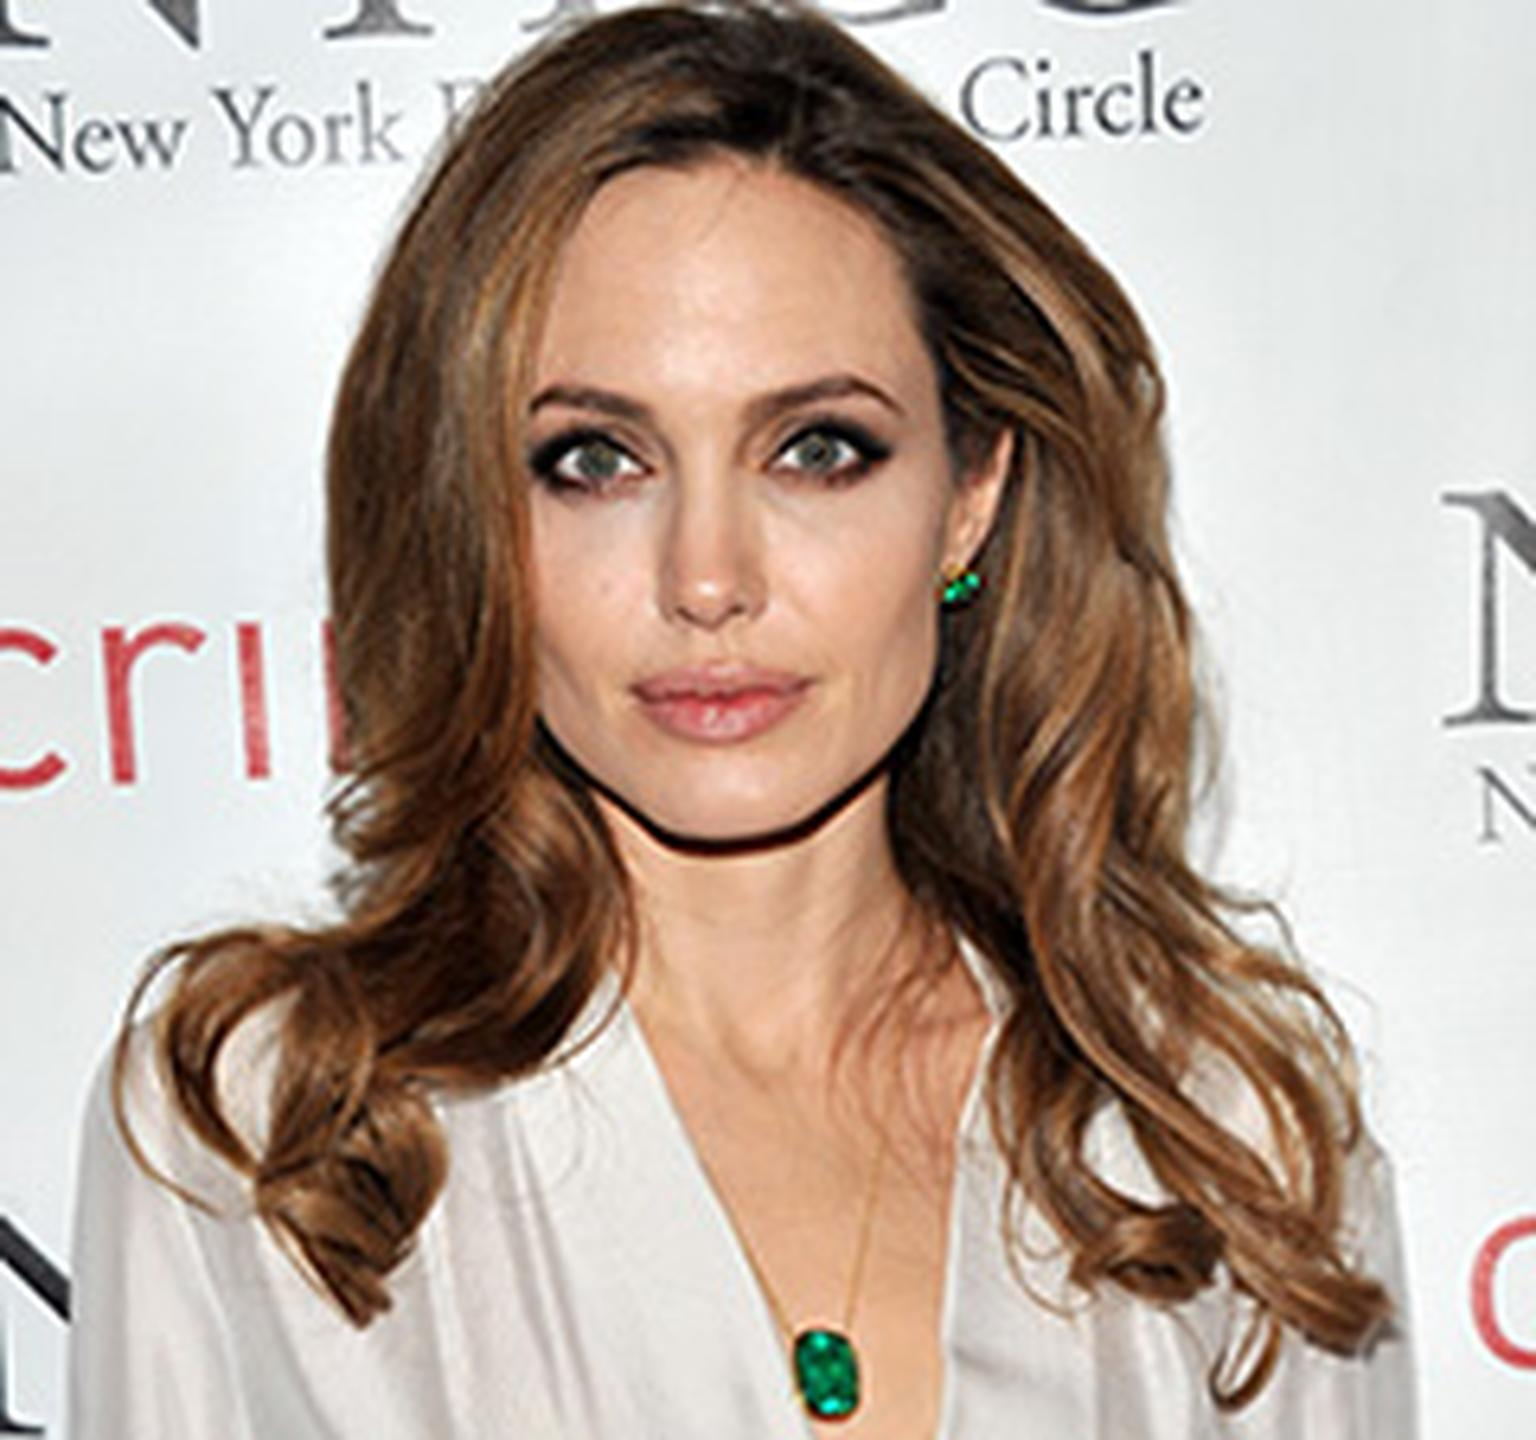 Angelina Jolie wears emeralds